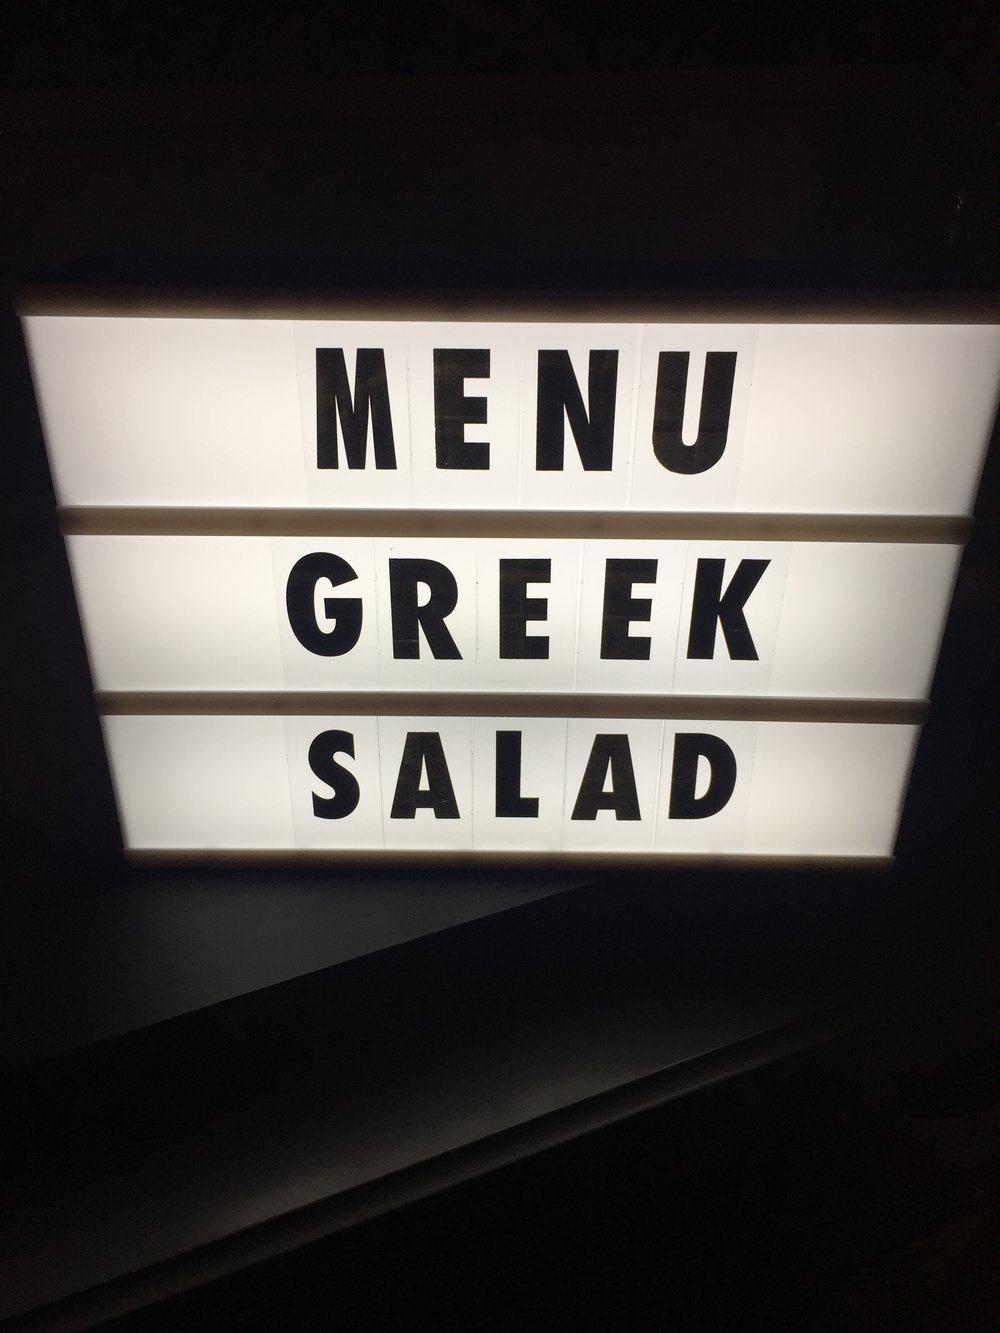 26GreekSalad1.JPG